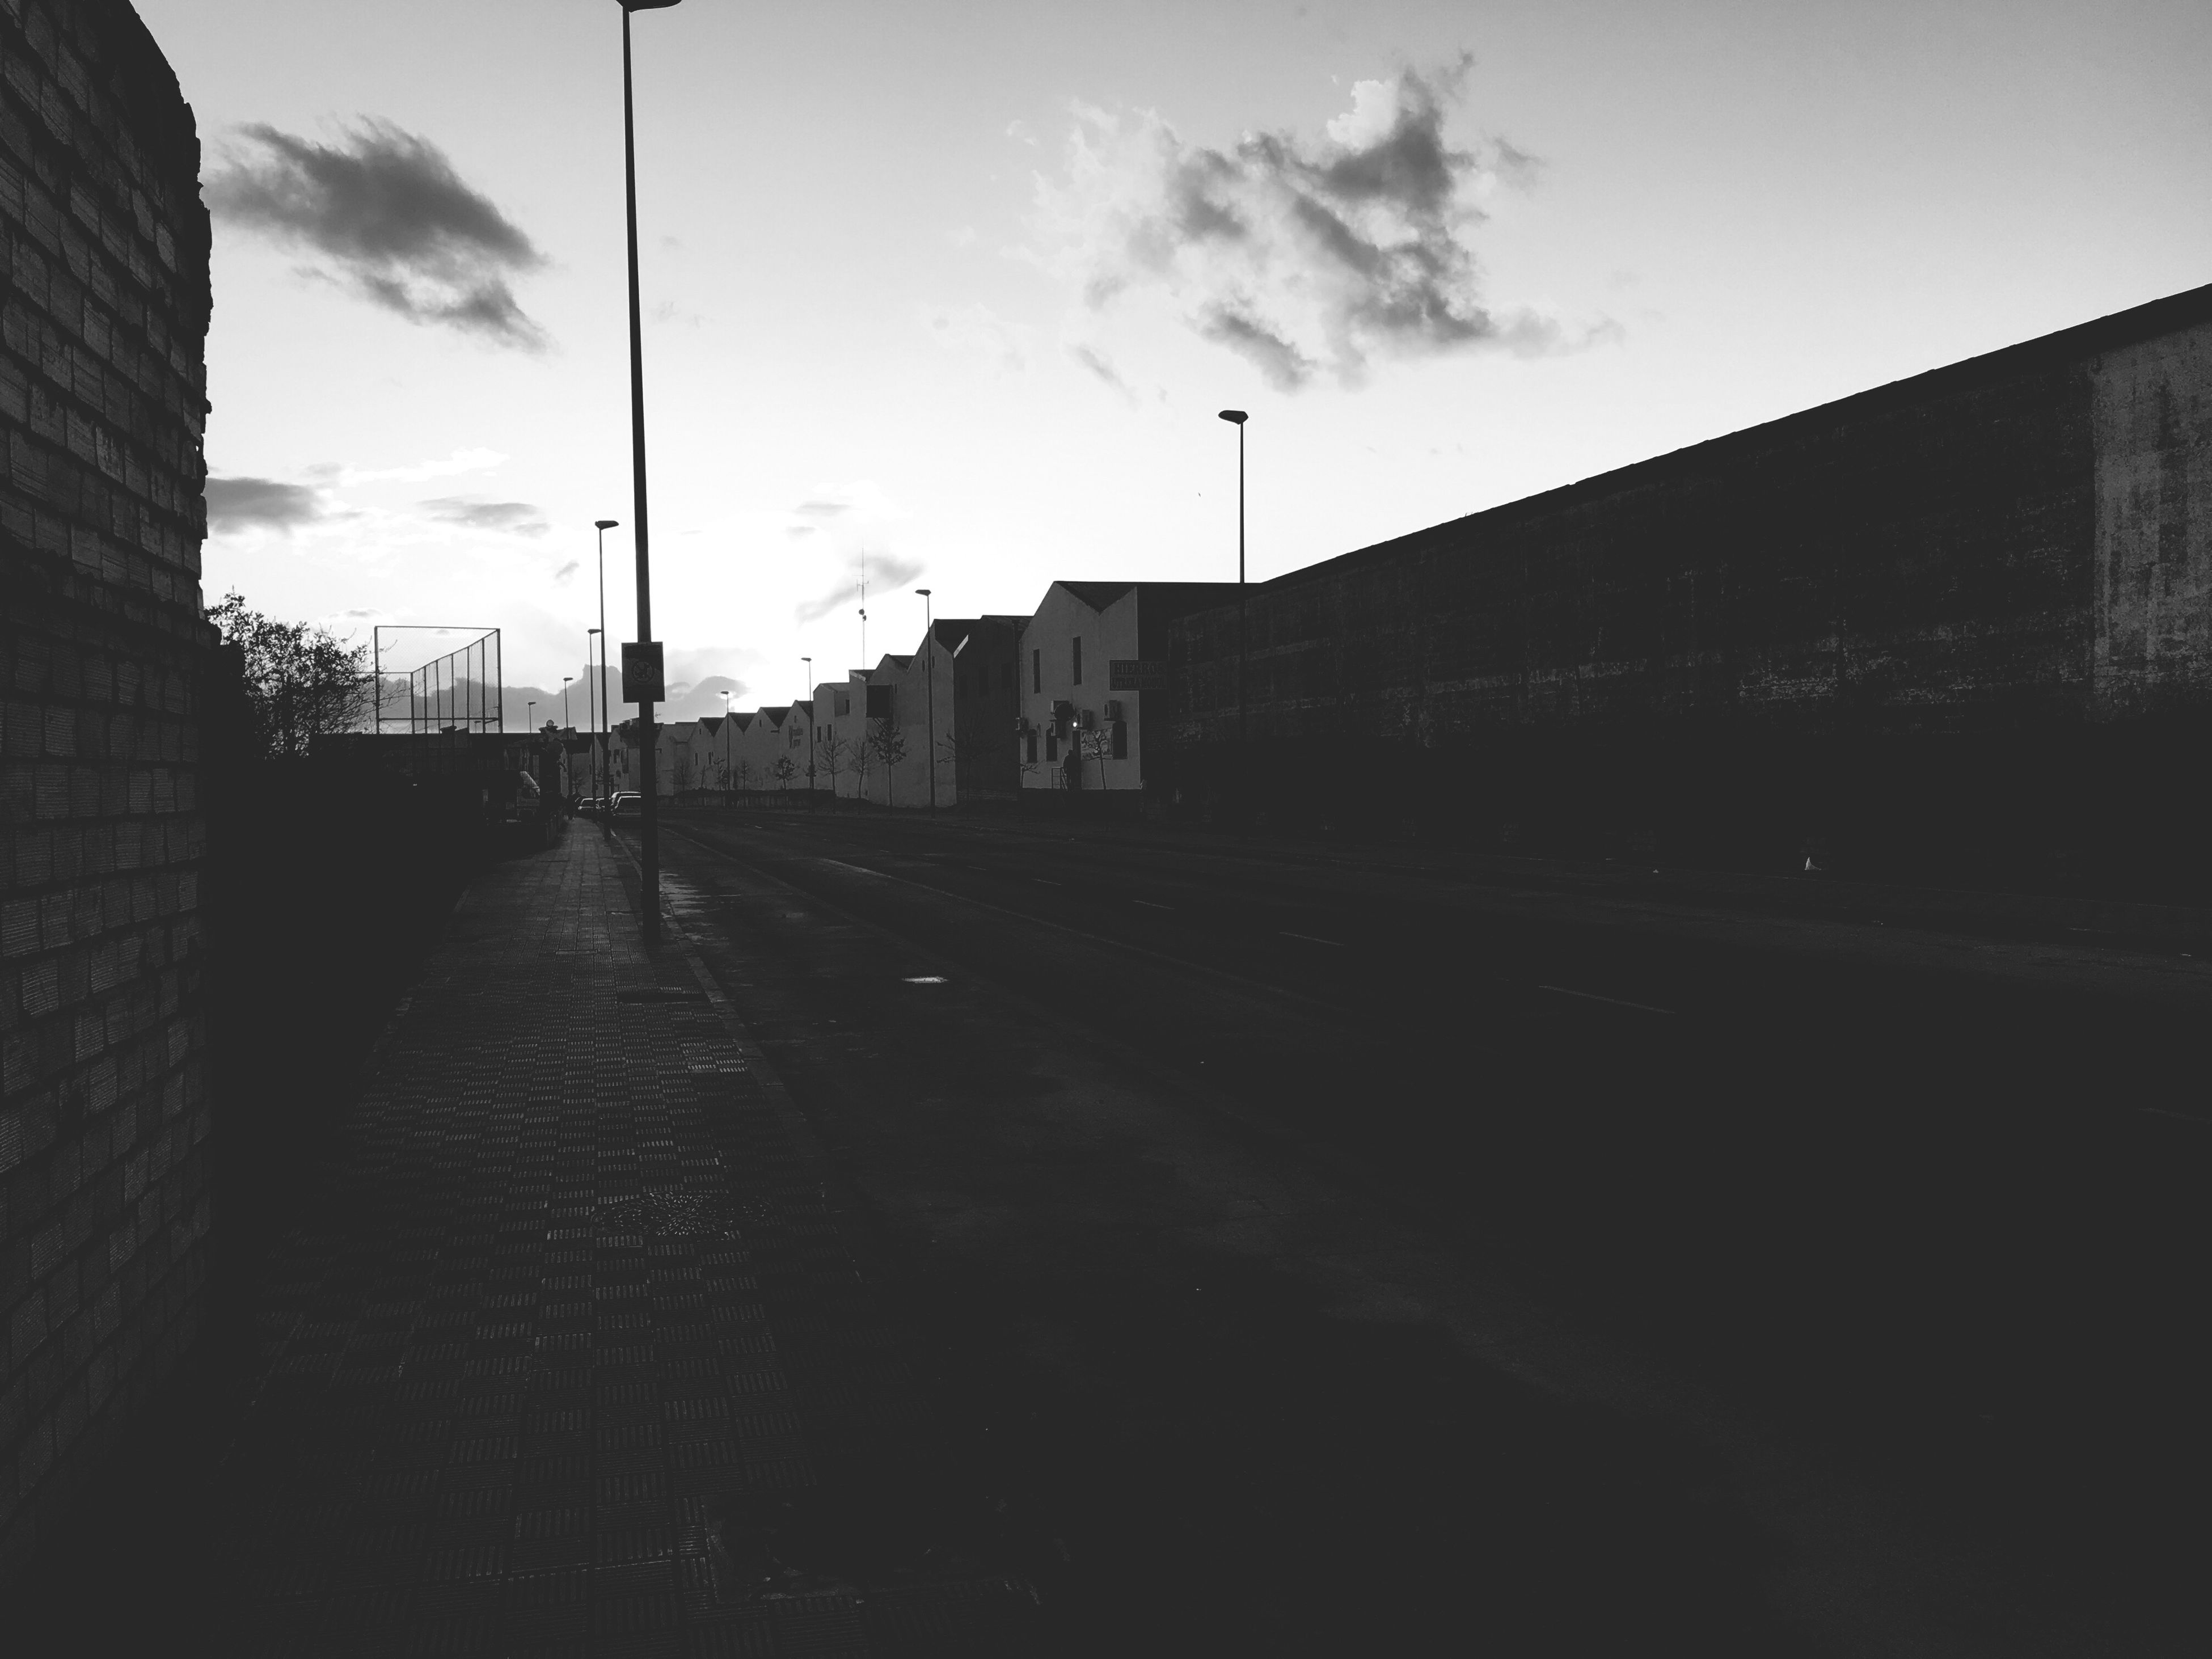 sky, architecture, built structure, road, street, building exterior, empty, cloud - sky, the way forward, house, cloud, empty road, long, day, cloudy, outdoors, surface level, diminishing perspective, no people